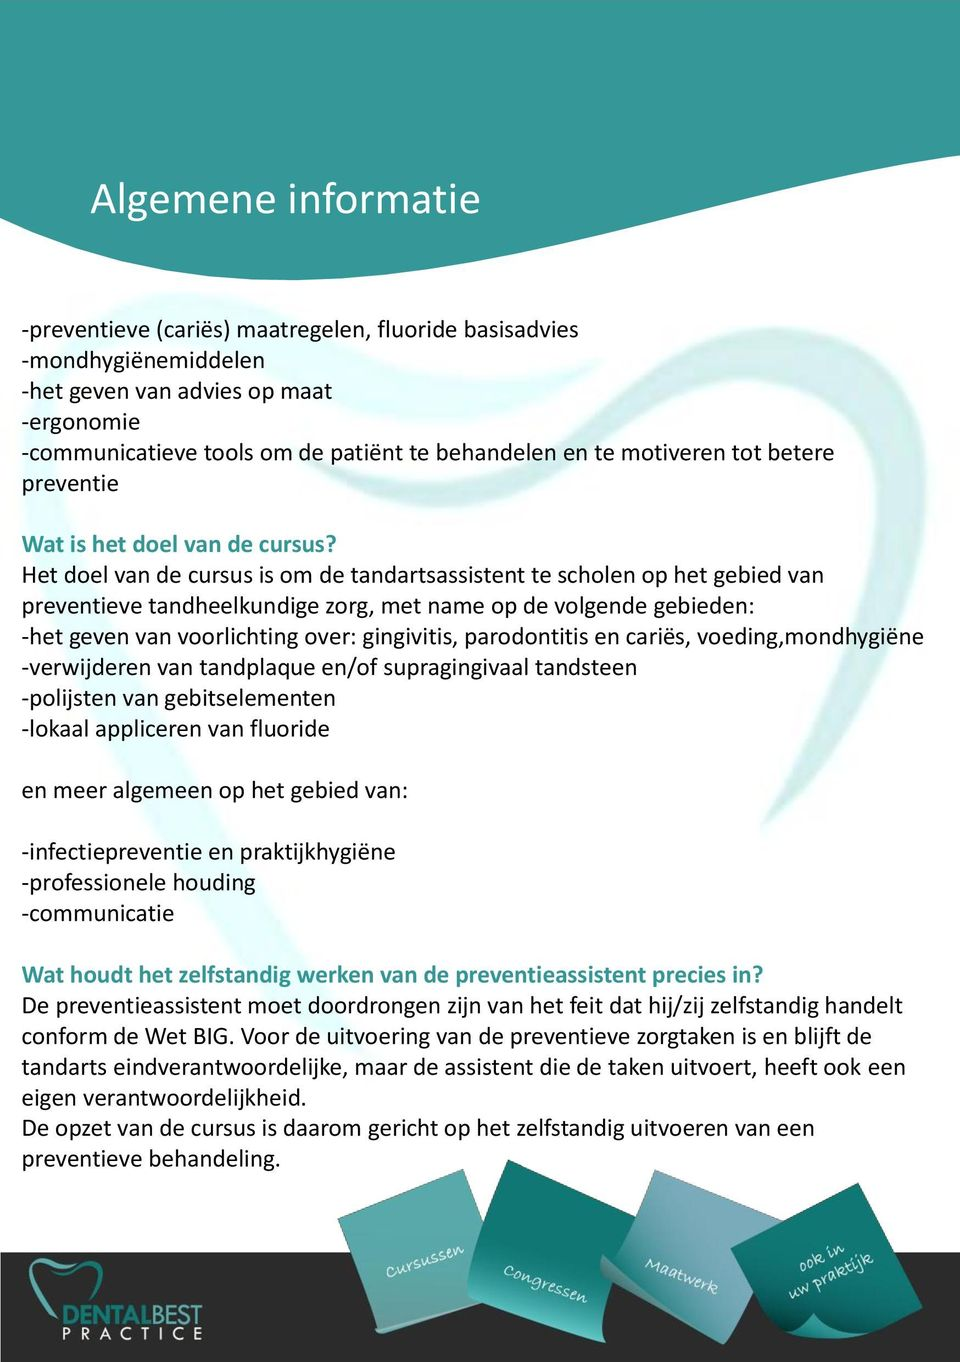 preventieve zorgtak -ergonomie mag overnemen, -communicatieve etc.